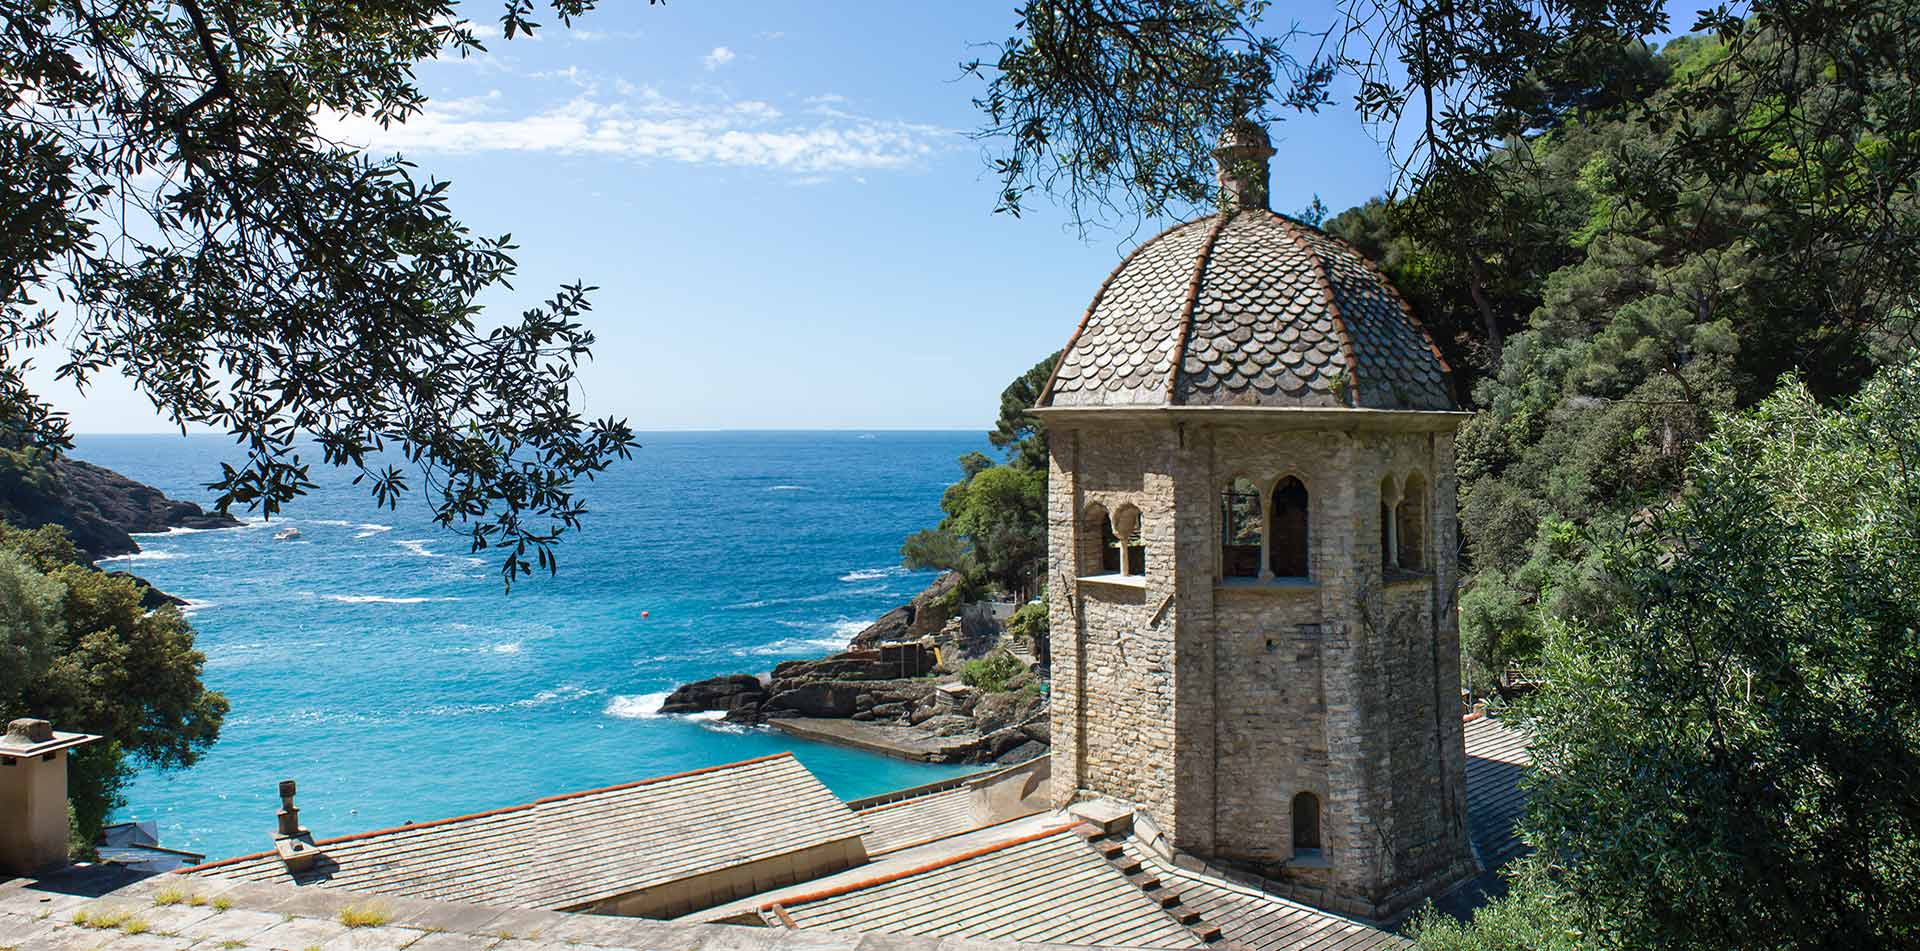 Europe Italy historic Abbey of San Fruttuoso beautiful turquoise water - luxury vacation destinations